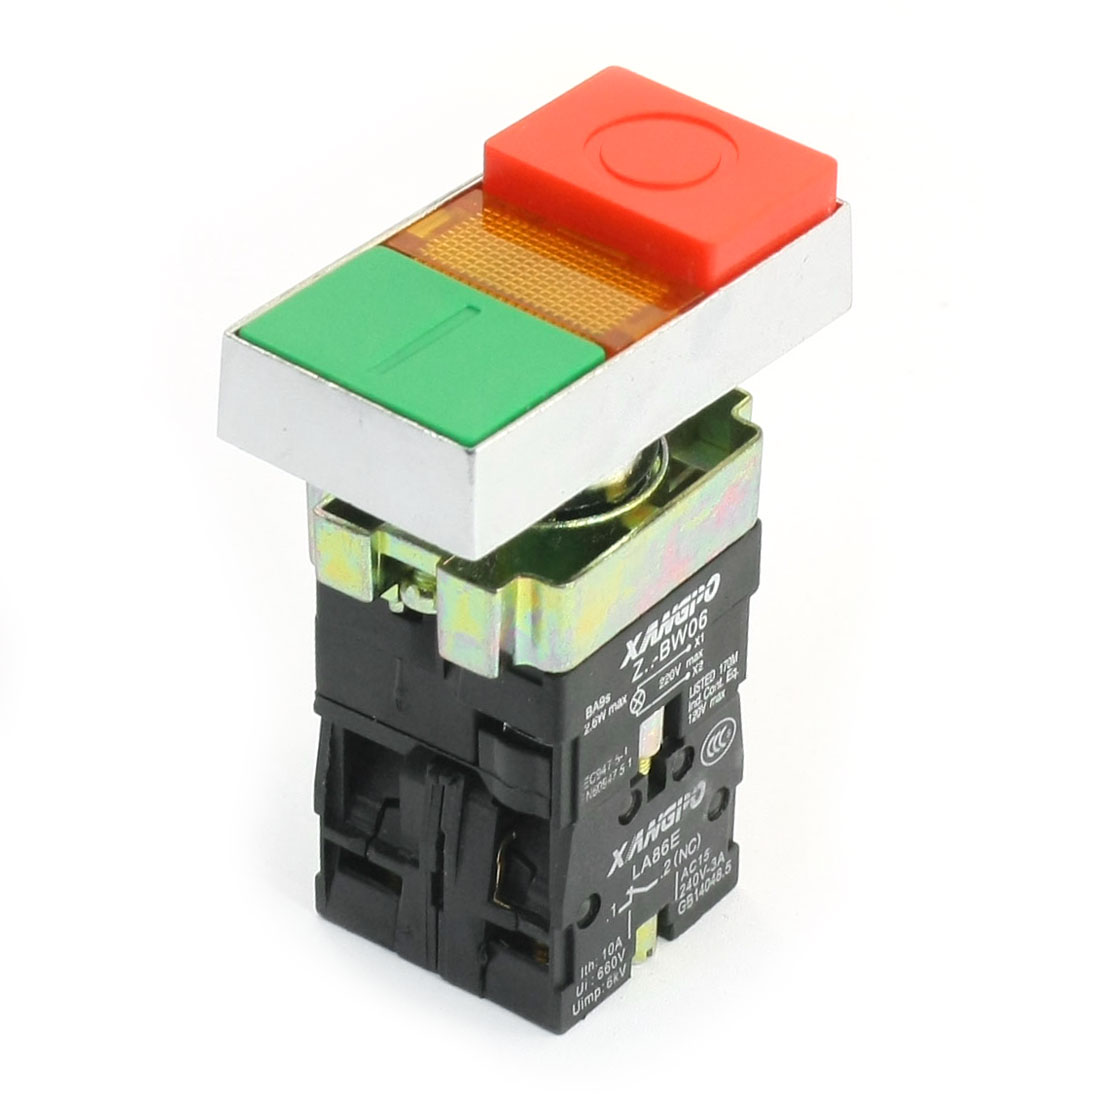 220V Yellow Indicator Light ON/OFF Momentary Push Button Switch